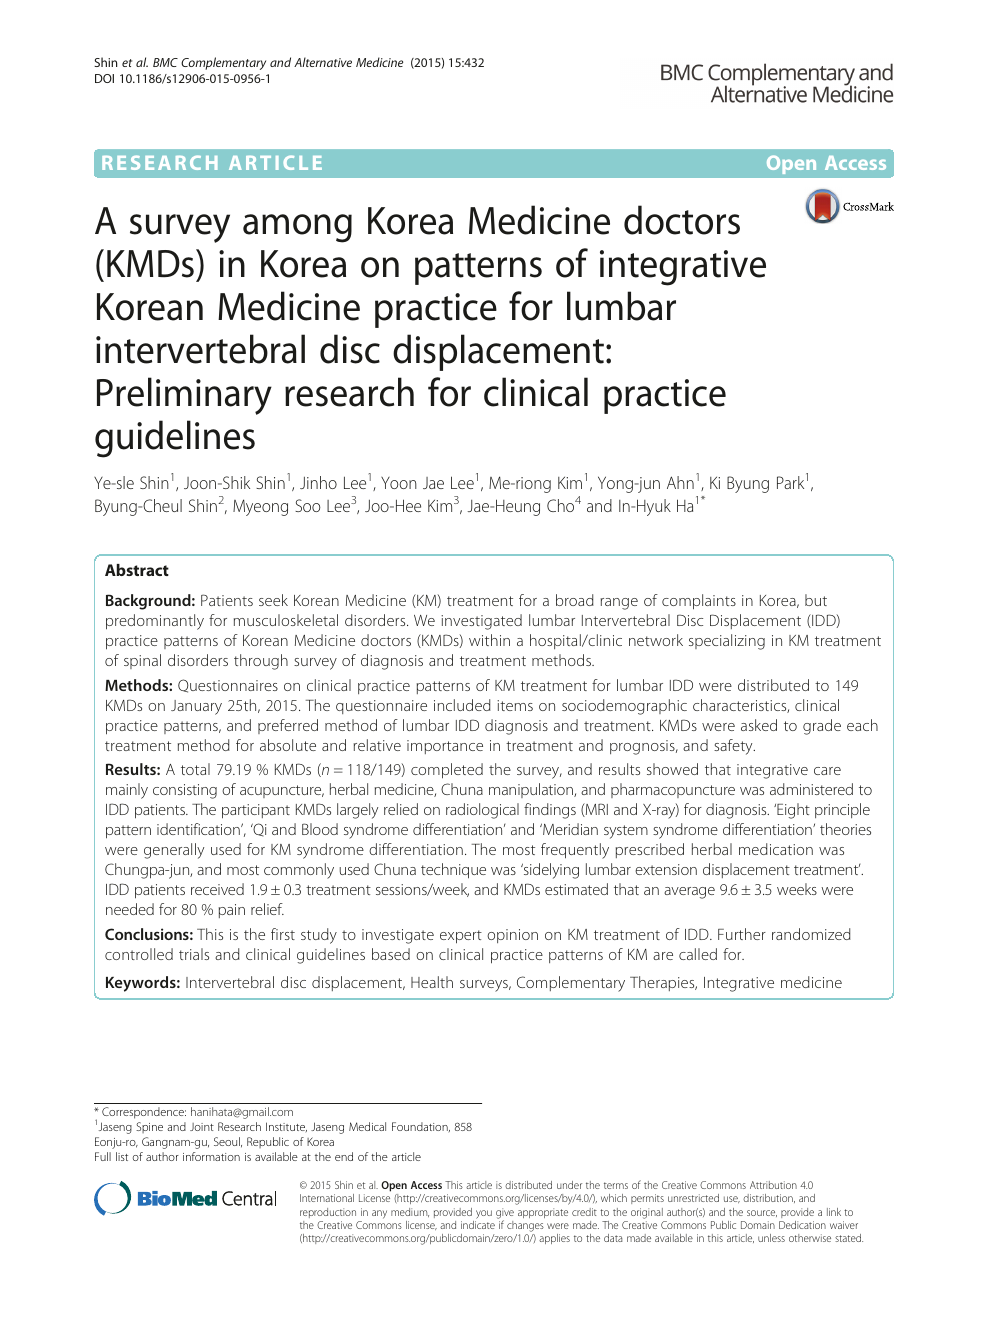 A survey among Korea Medicine doctors (KMDs) in Korea on